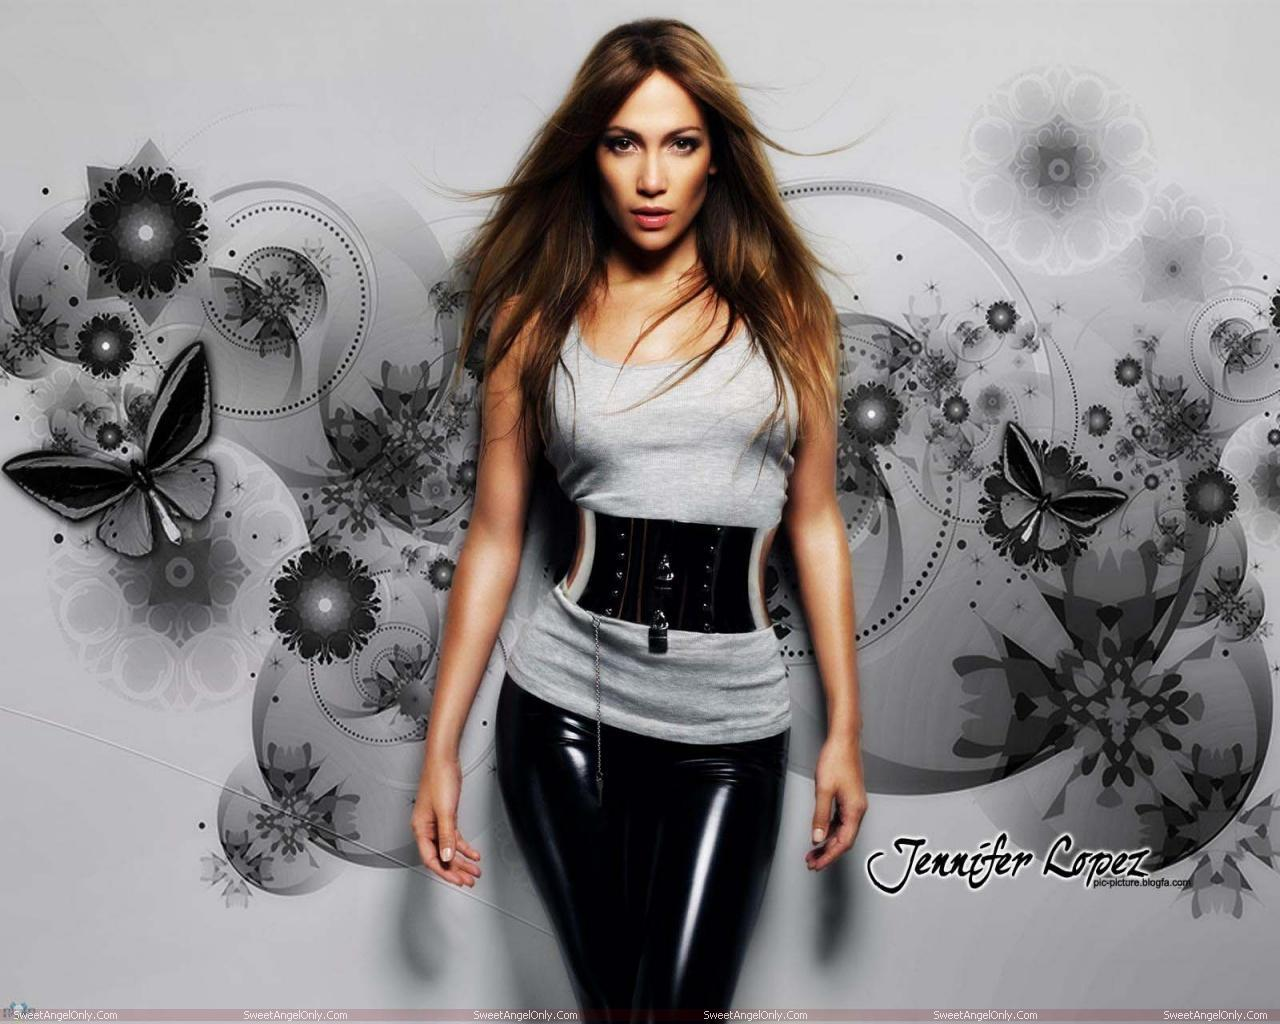 http://3.bp.blogspot.com/-BIu6L10SYoM/TWjm133VpqI/AAAAAAAAE0s/v4lOqFd7gtQ/s1600/actress_jennifer_lopez_hot_wallpapers_04.jpg